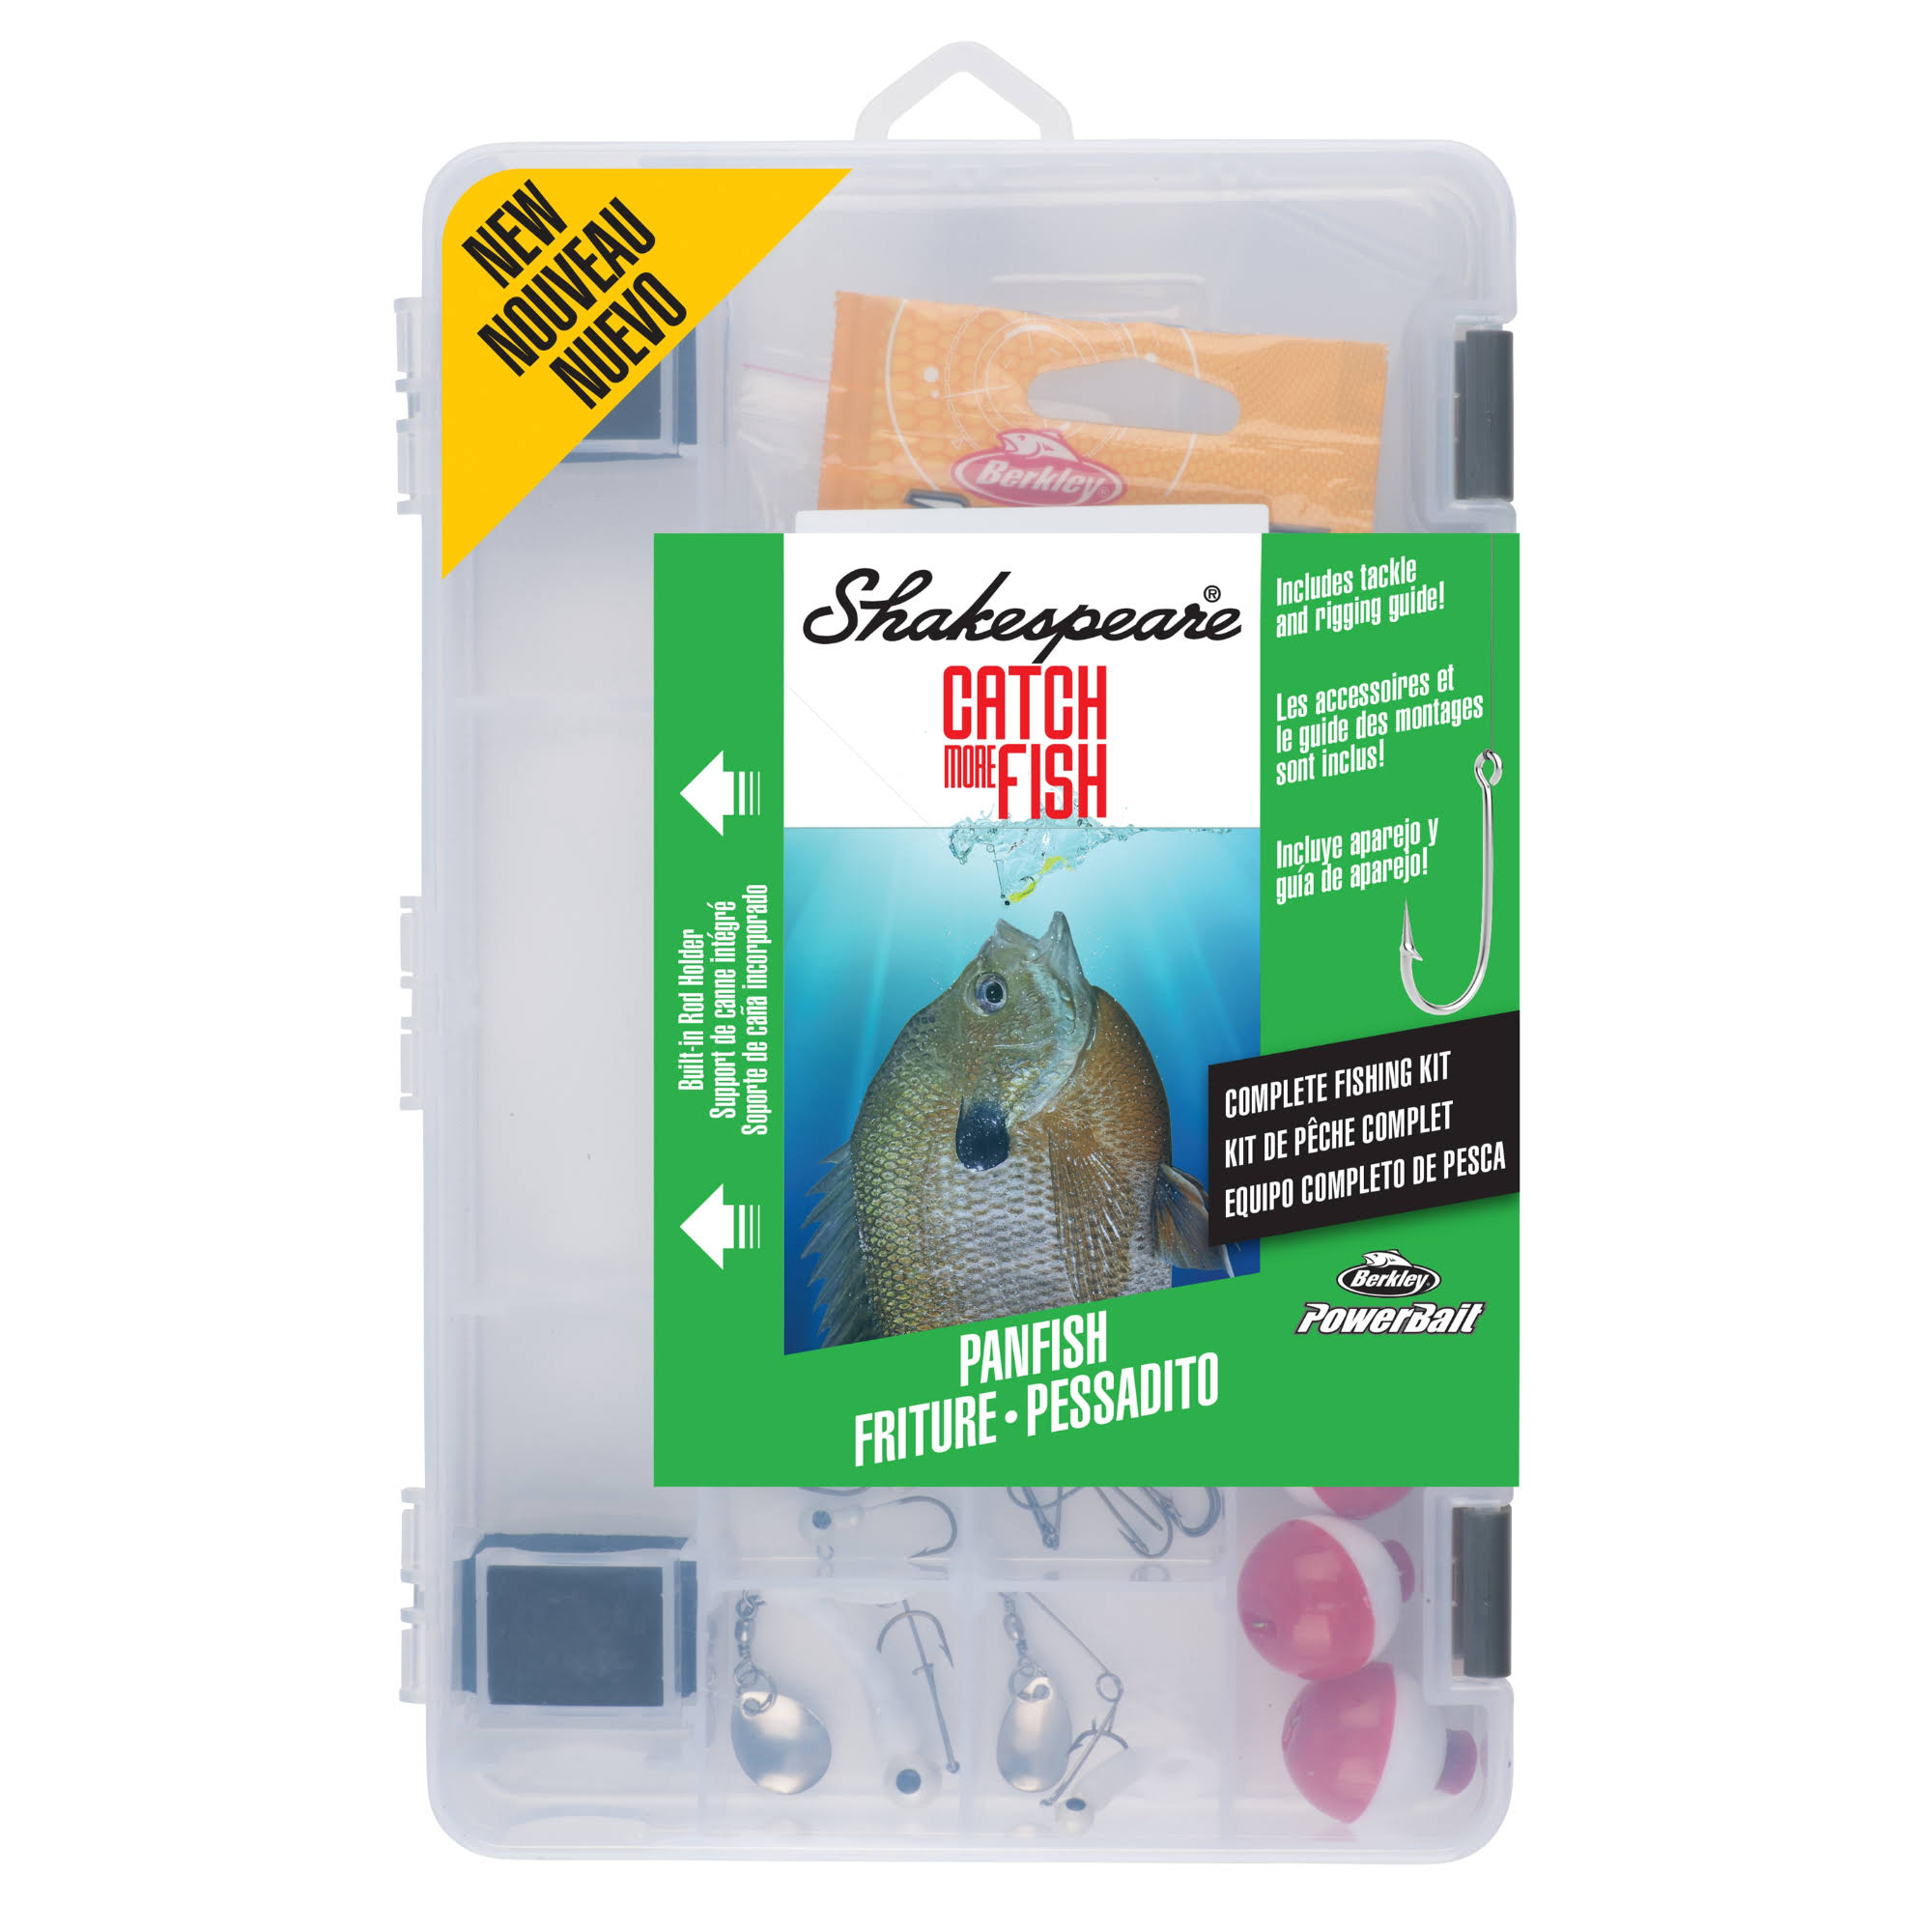 Shakespeare Catch More Fish Tackle Box Kit, Other